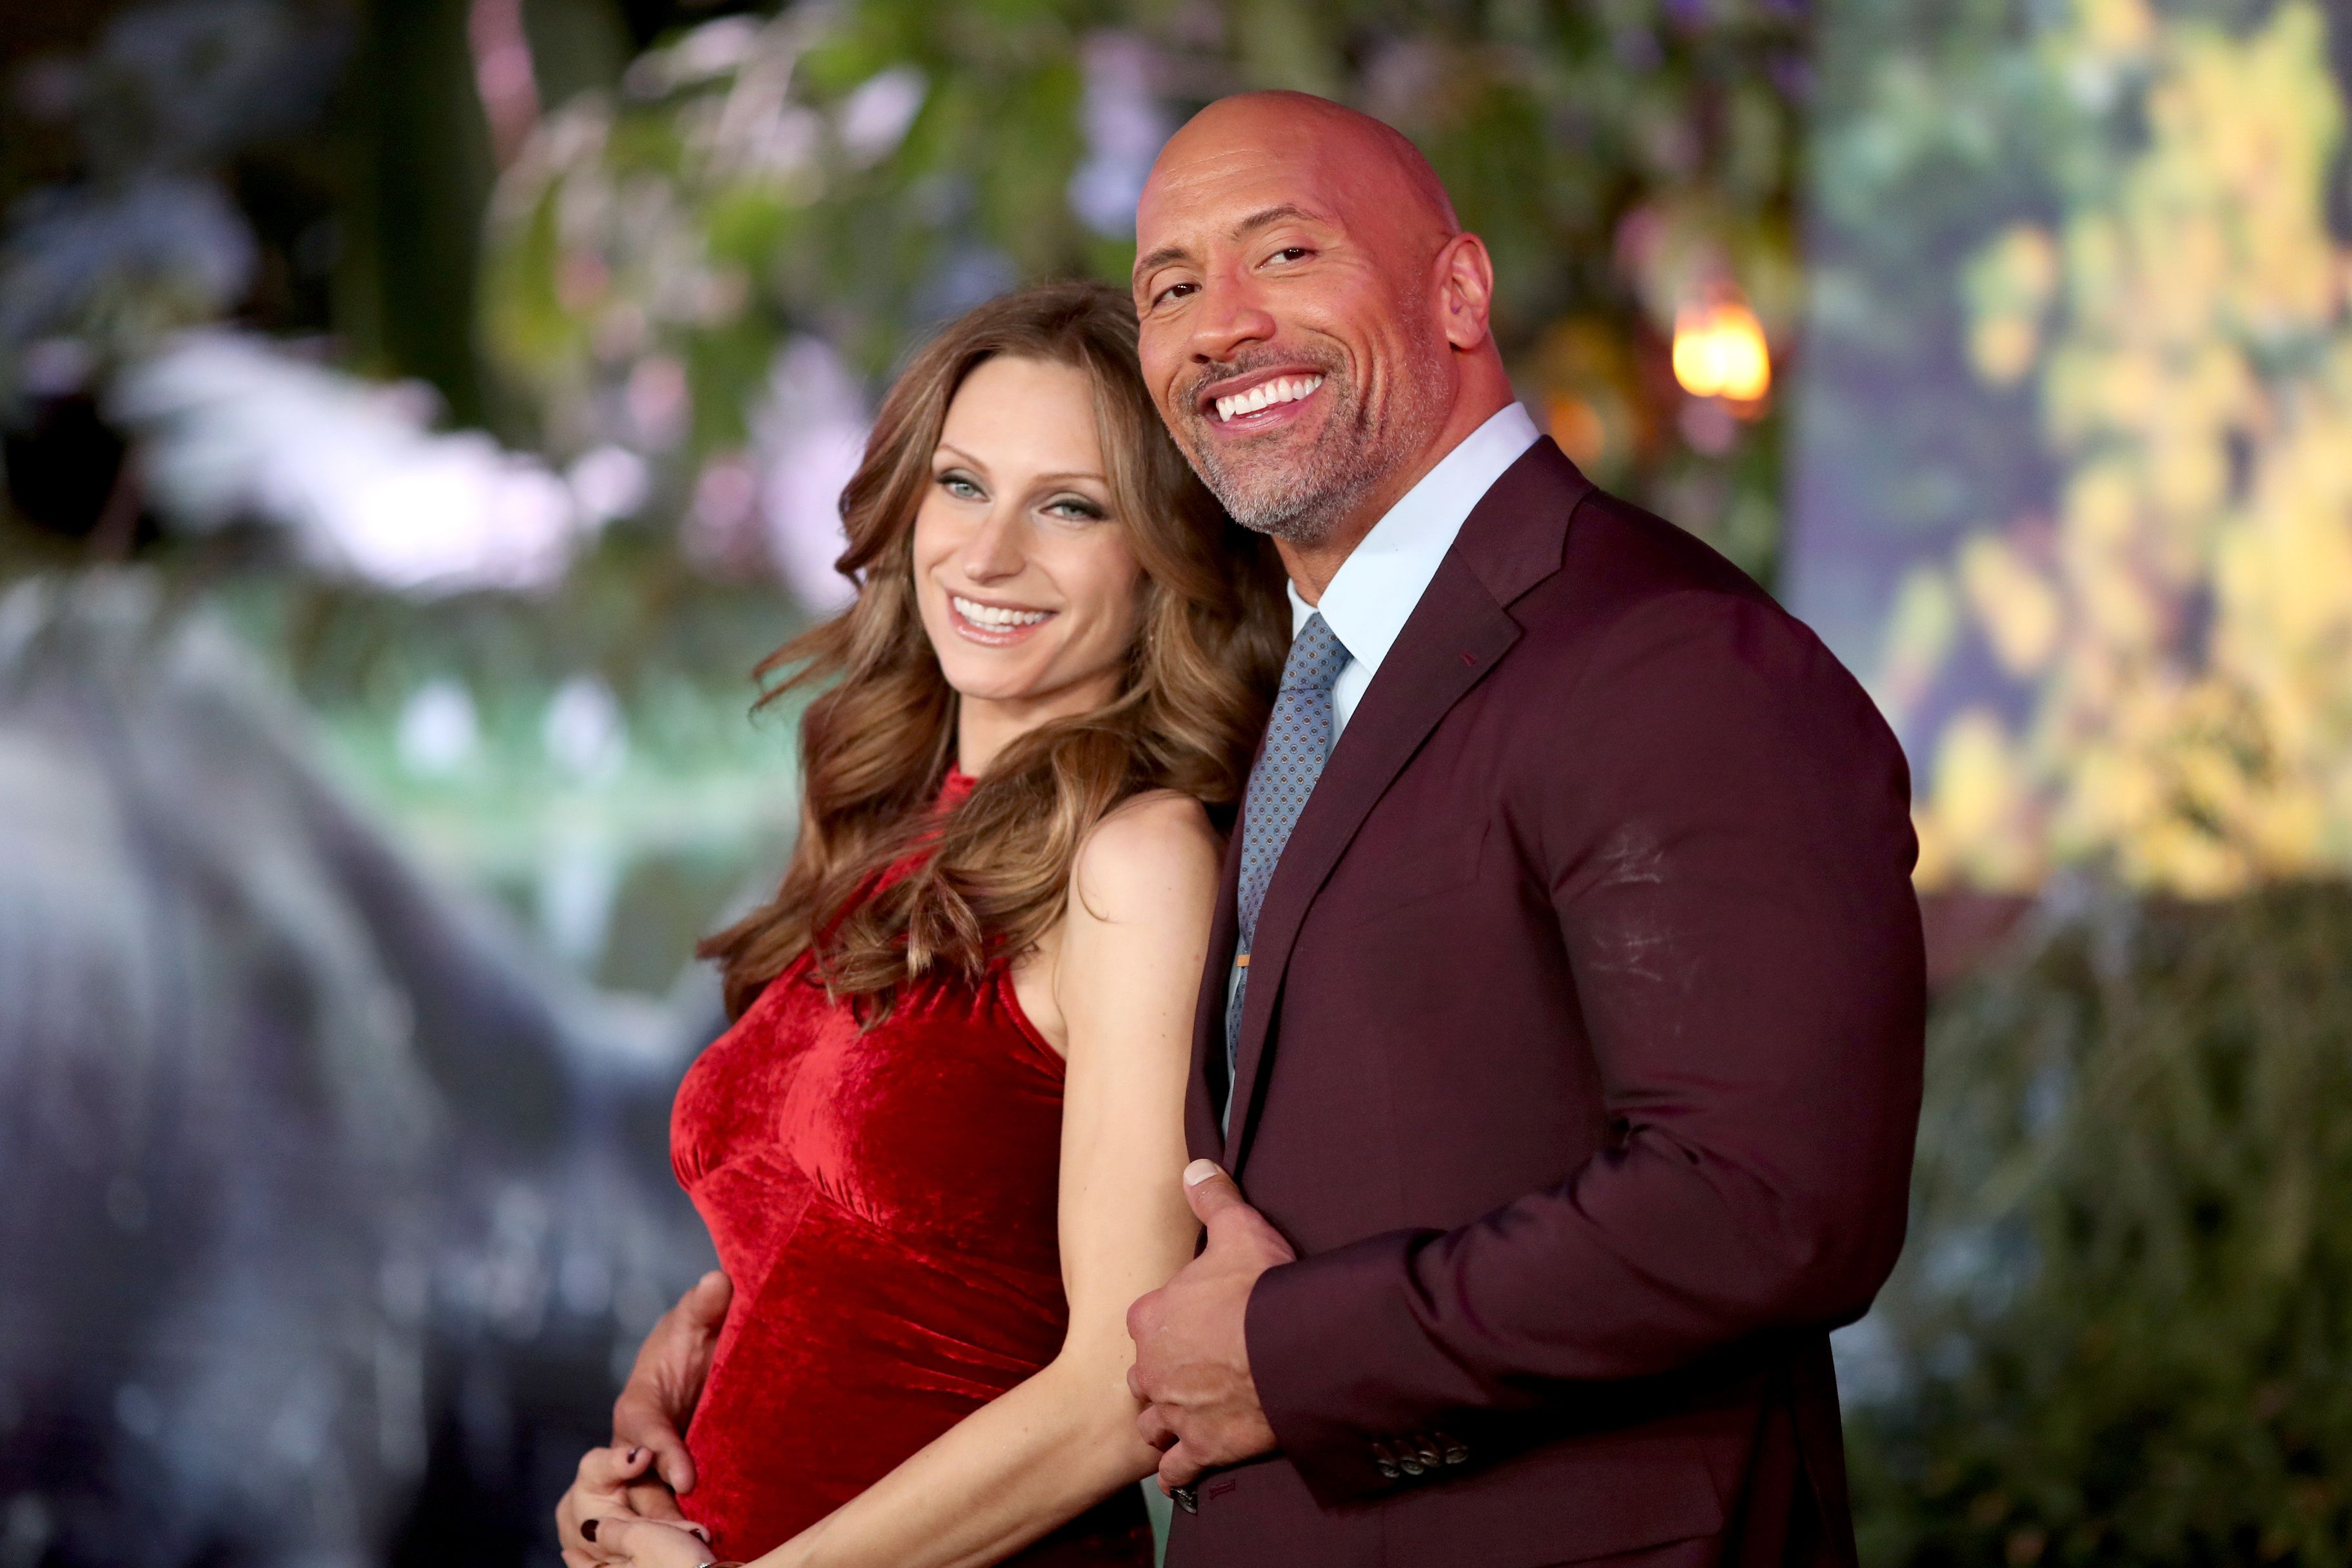 Dwayne The Rock Johnson Shared the Sweetest First Photo of His New Daughter forecasting